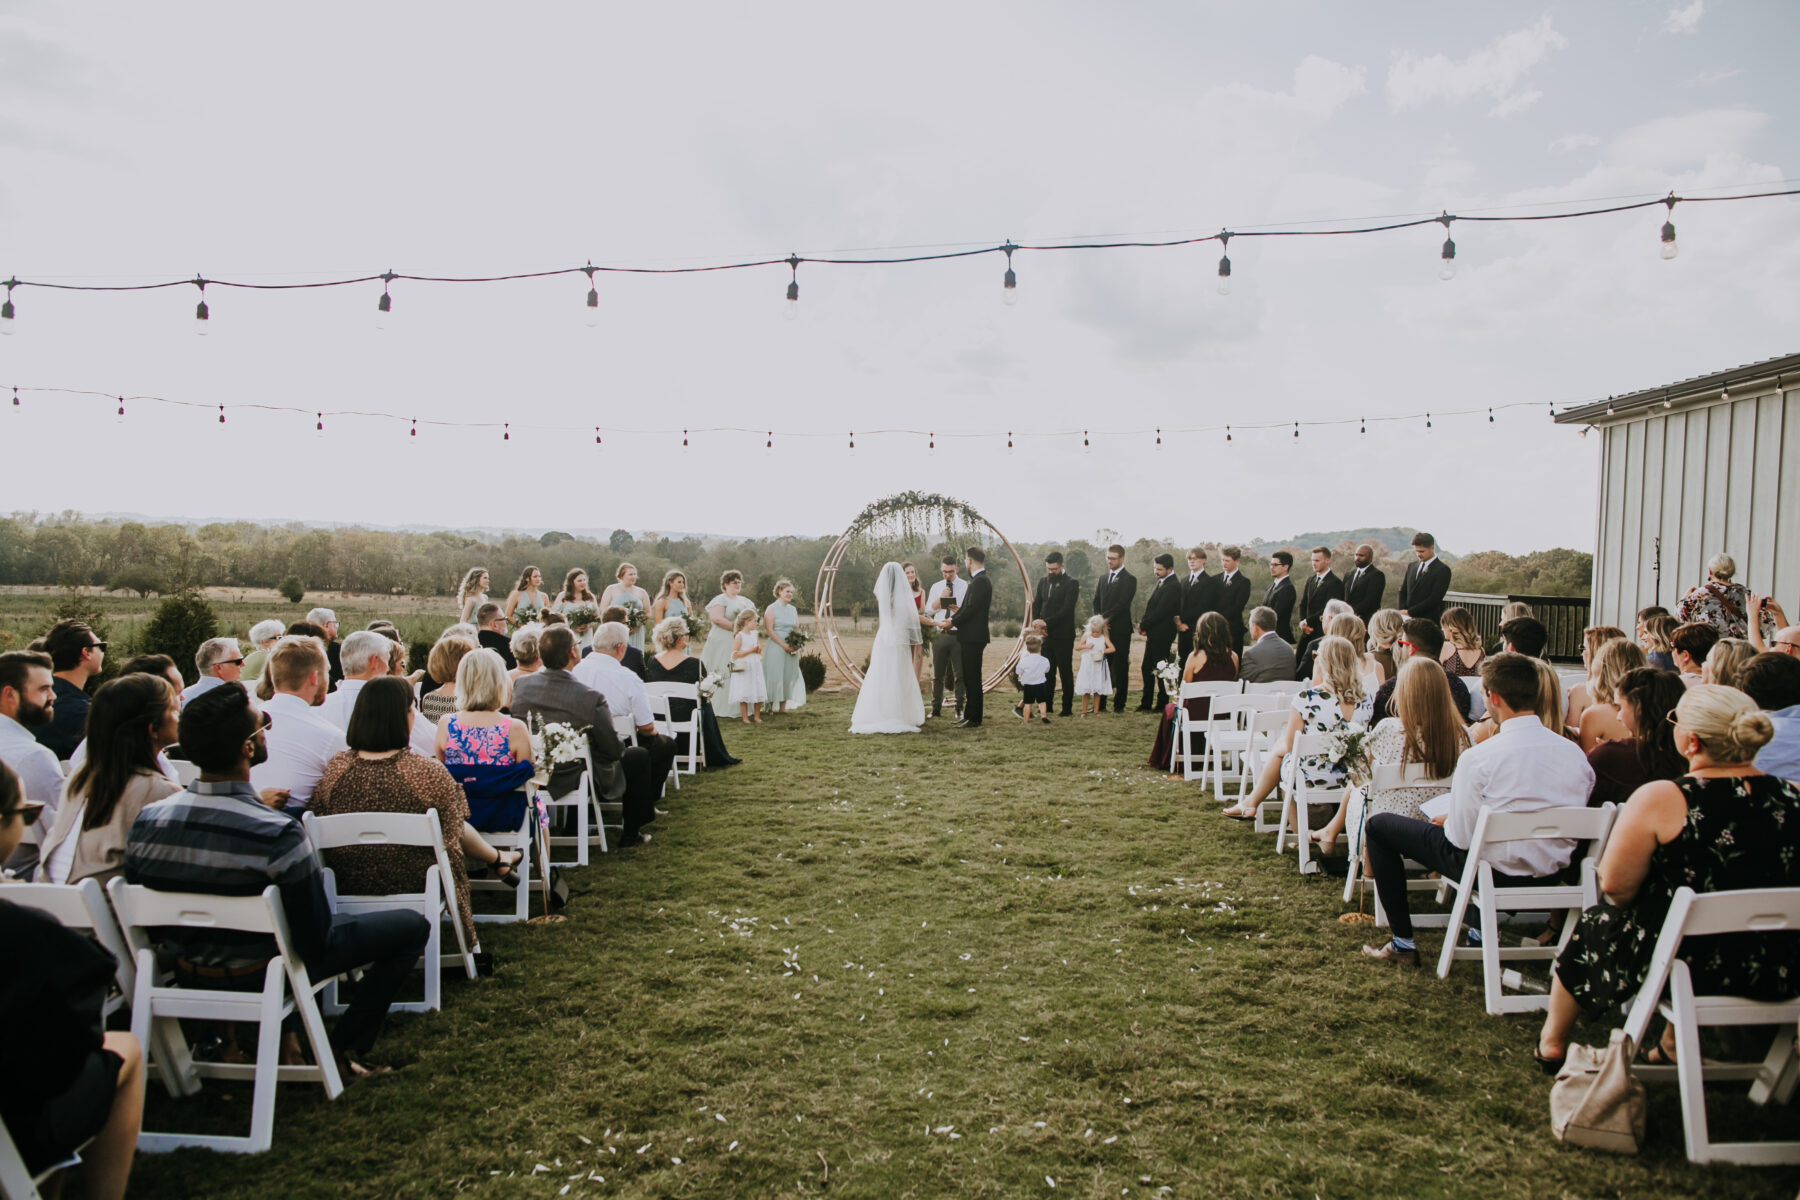 Outdoor wedding inspiration: Nashville Wedding with Beautiful Views by Teale Photography featured on Nashville Bride Guide